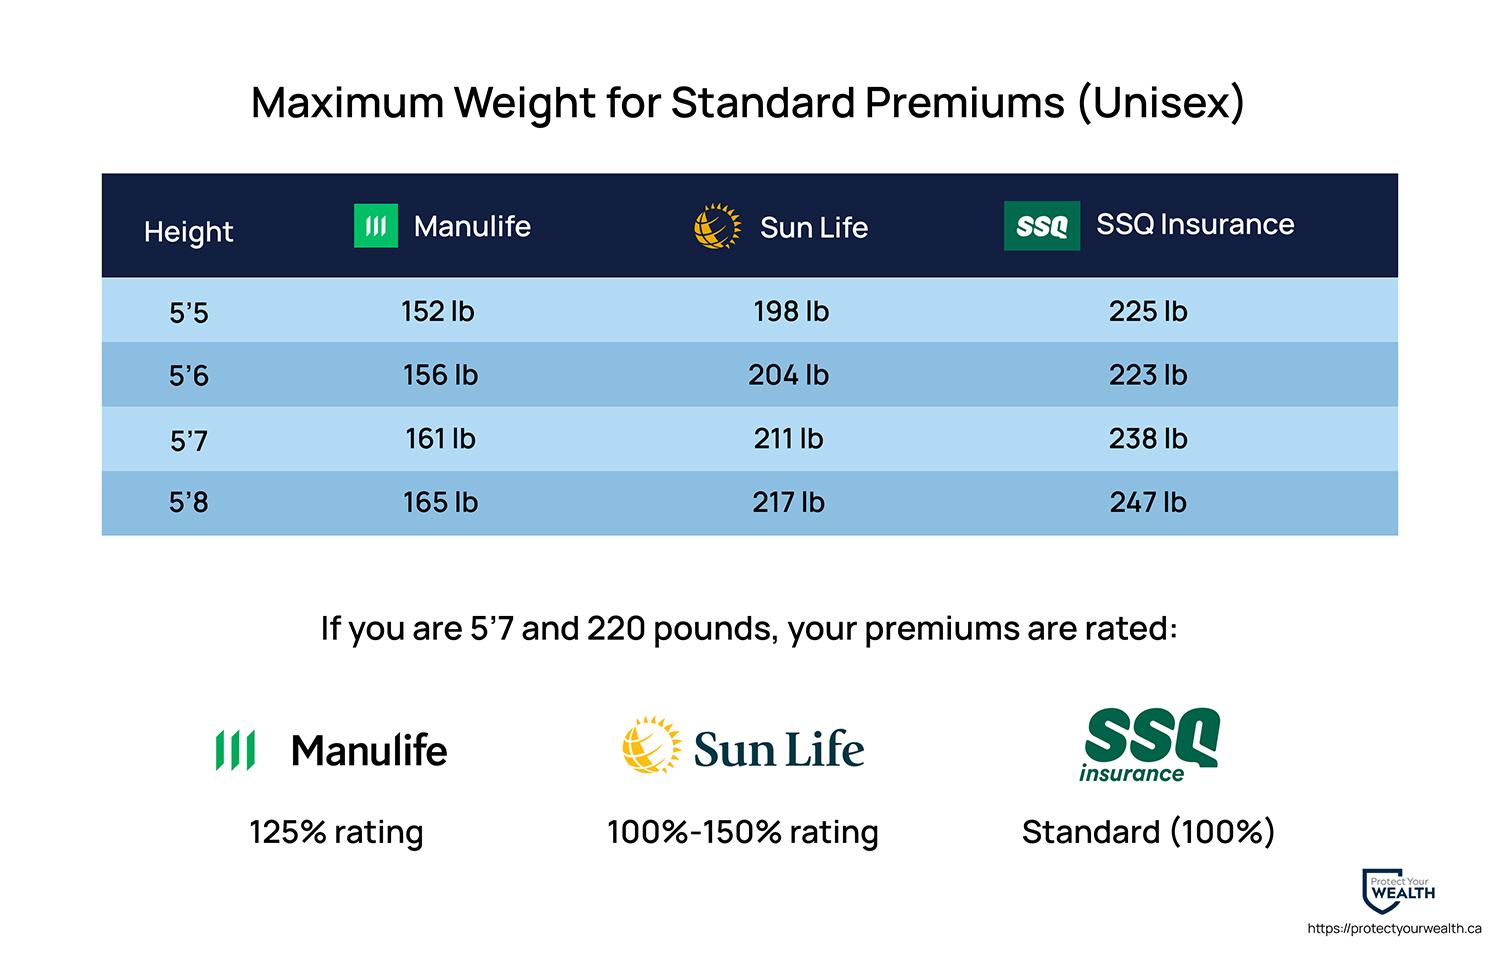 Maximum weights for standard premiums from Manulife Insurance, Sunlife Insurance, and SSQ Insurance.